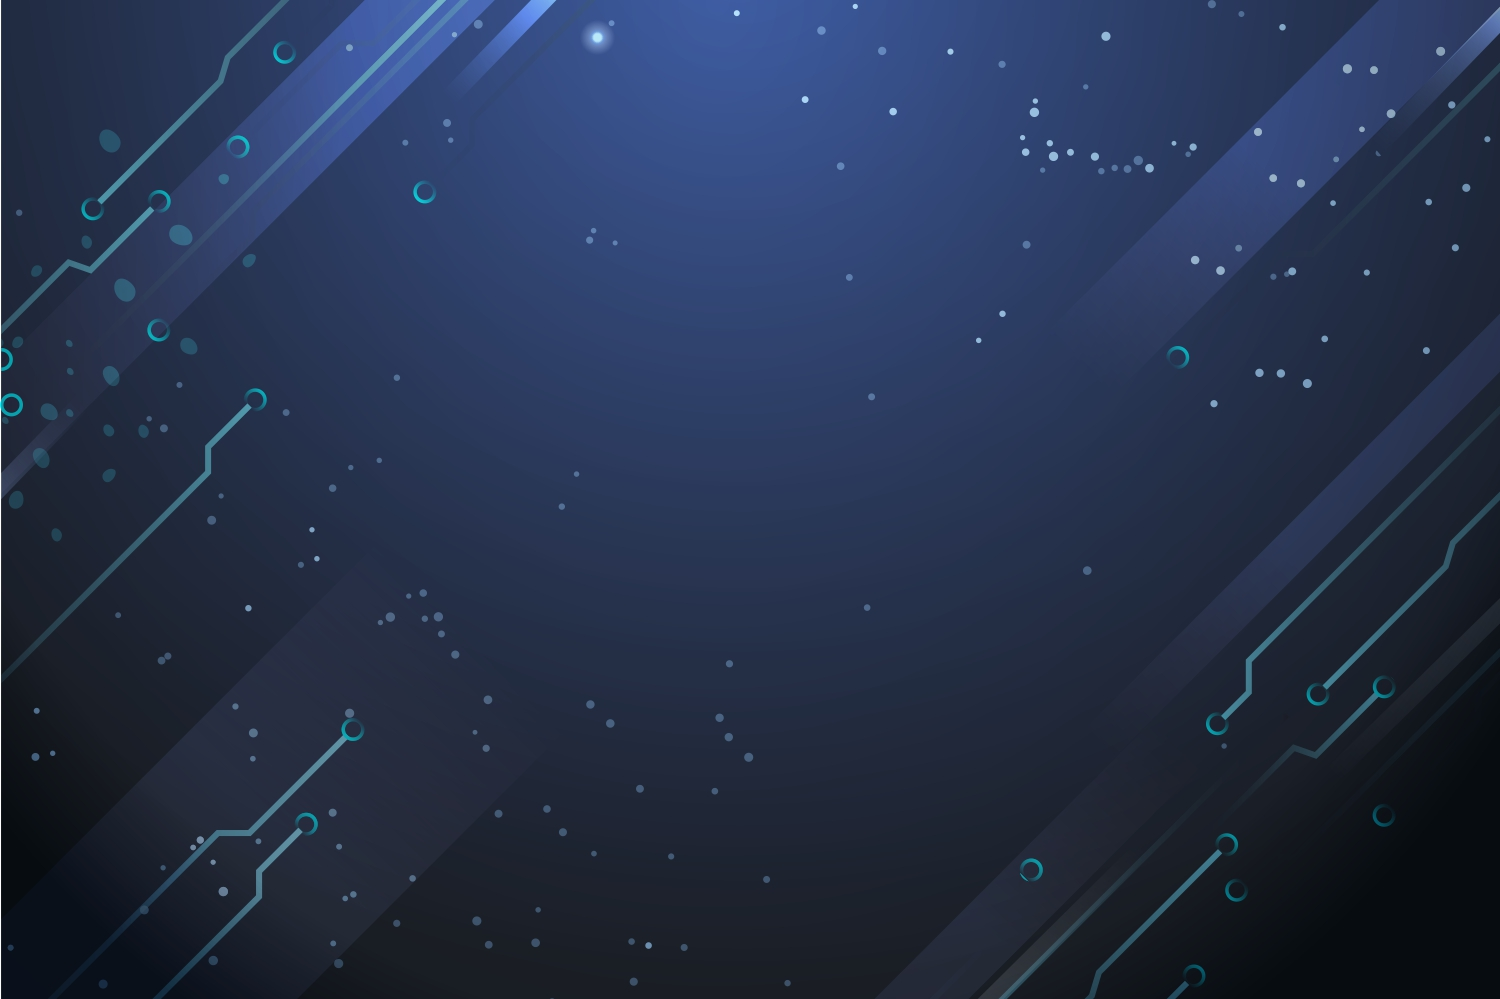 Technology Background Download From Coreldrawdesign Free Trending